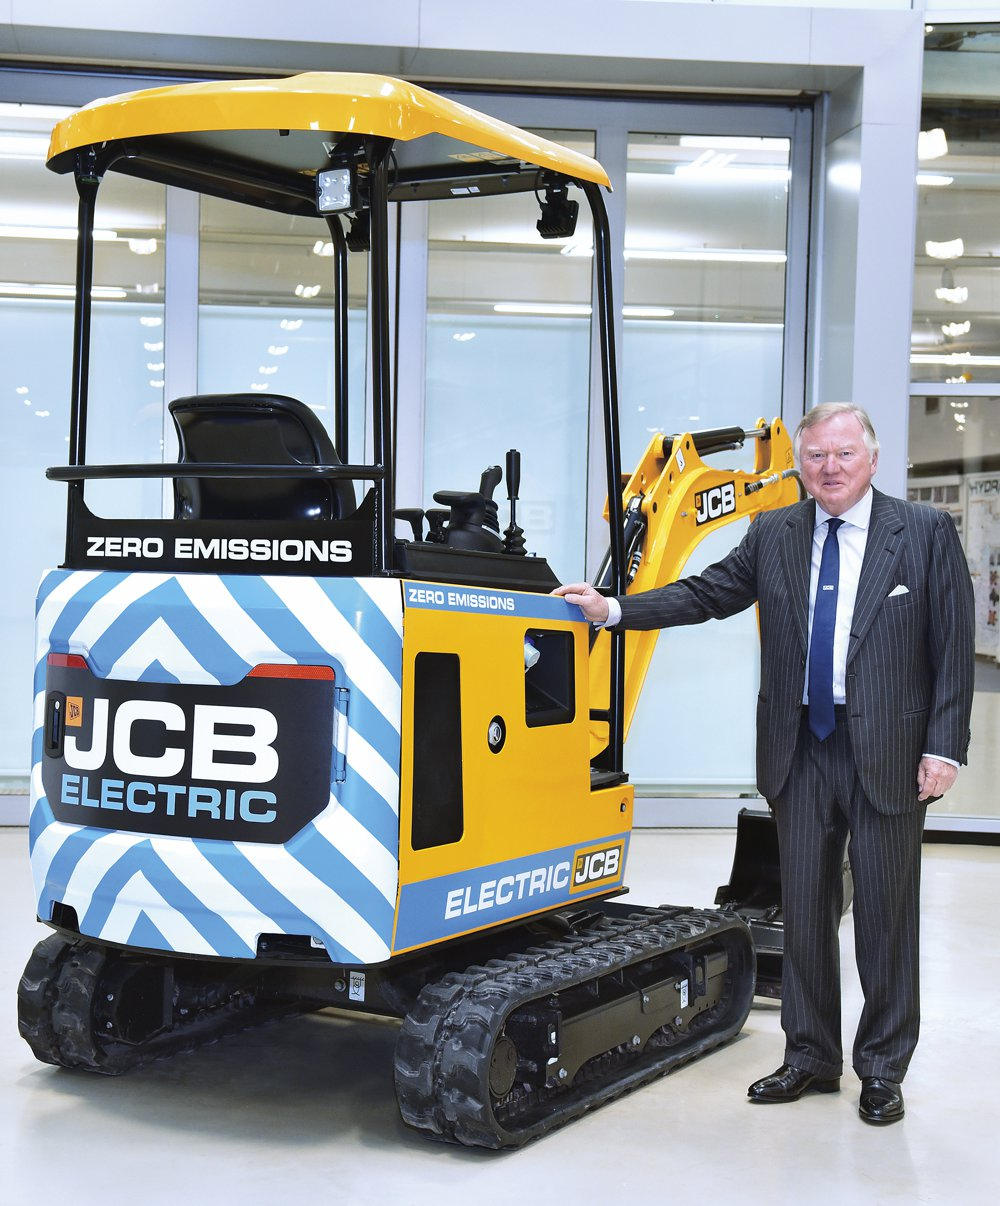 JCB set new records for turnover, machine sales and earnings in 2018